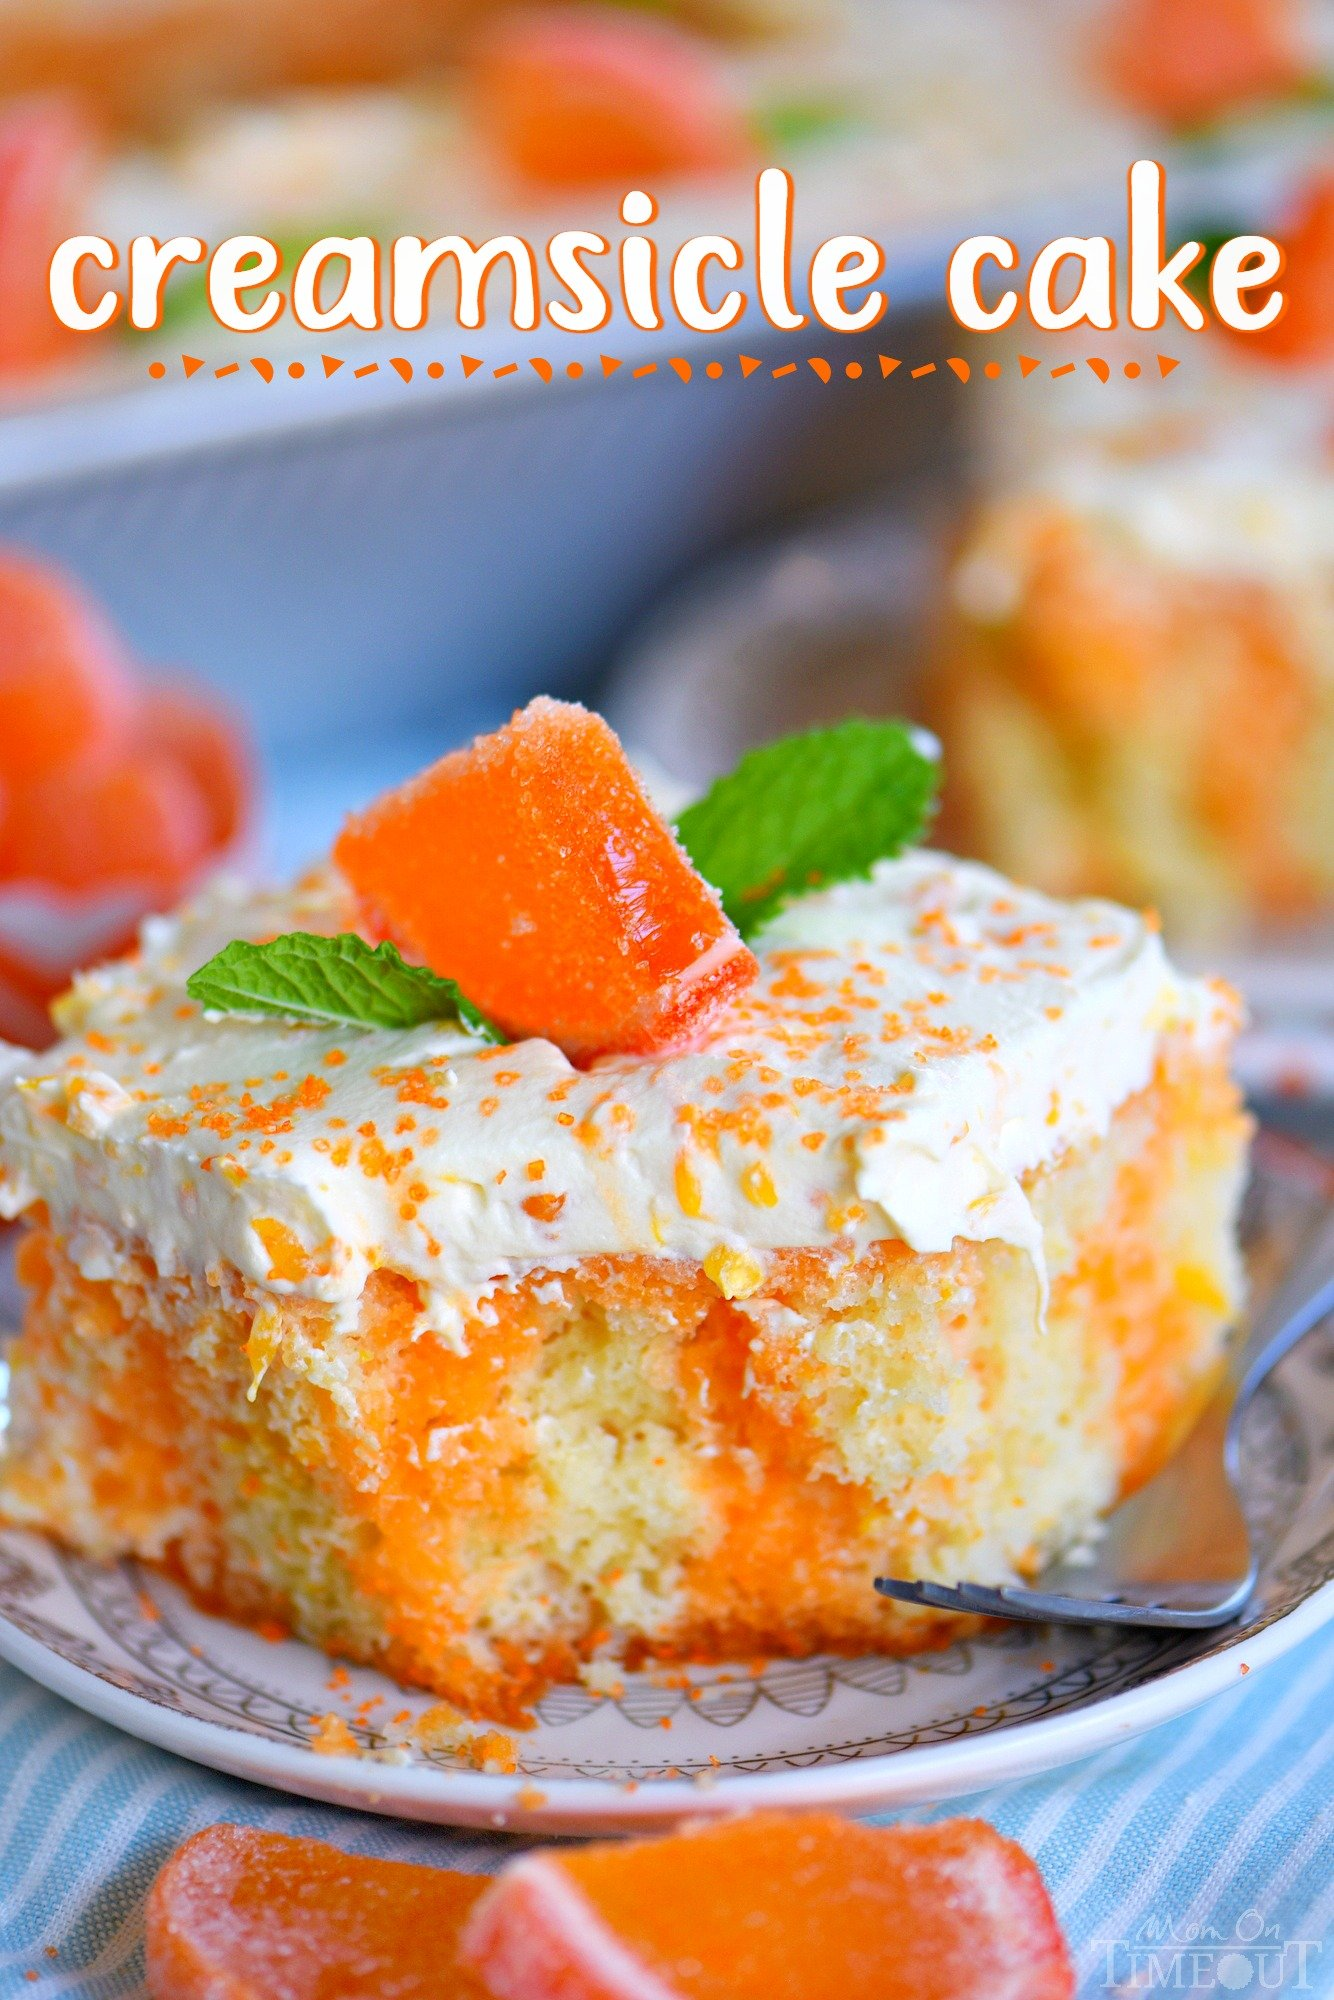 piece of orange creamsicle cake with mint leaves on small plate with fork